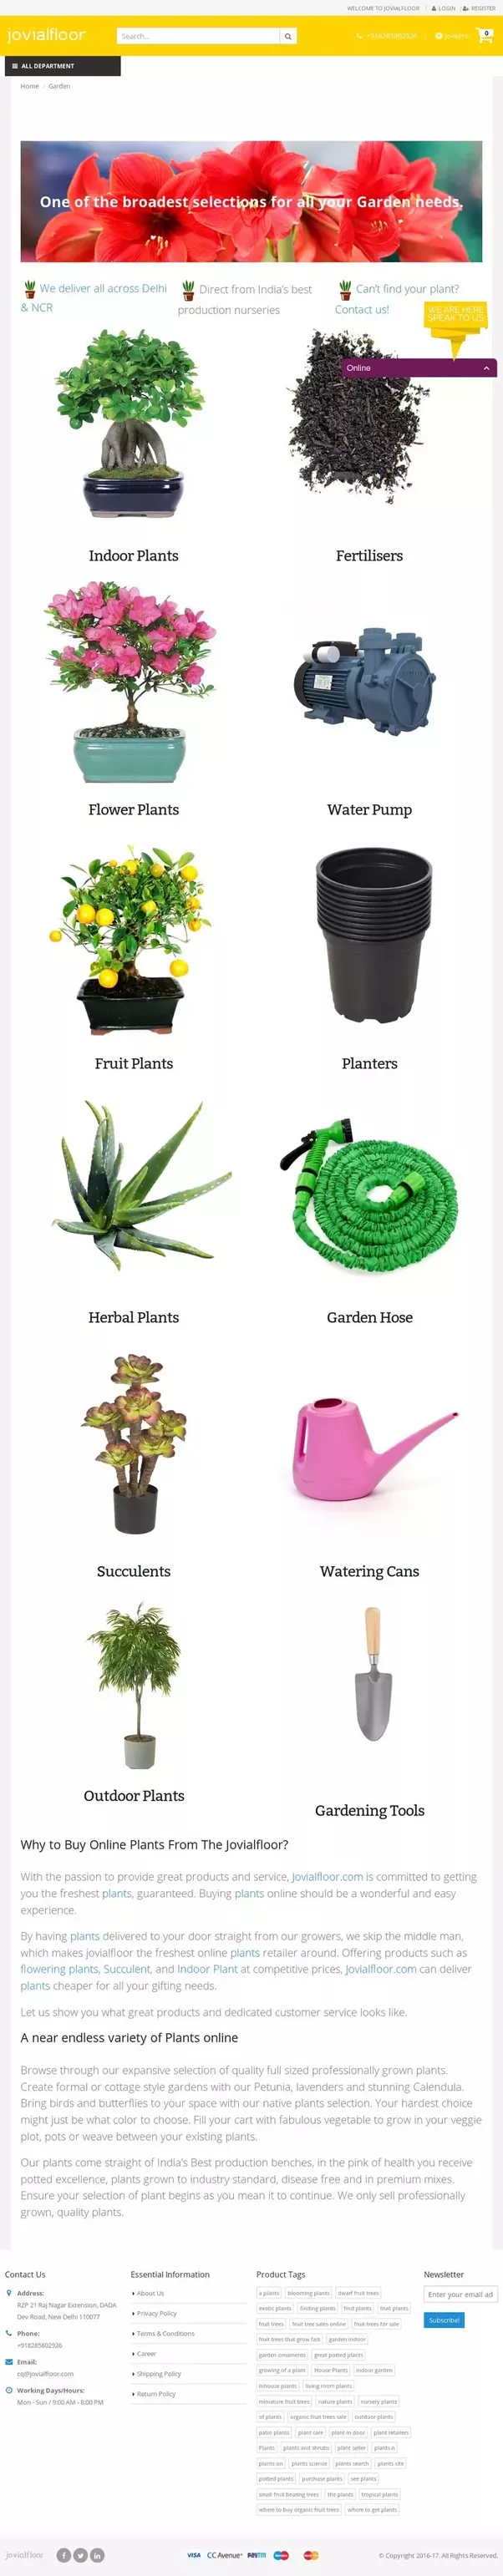 Where can I buy plants online in India? - Quora